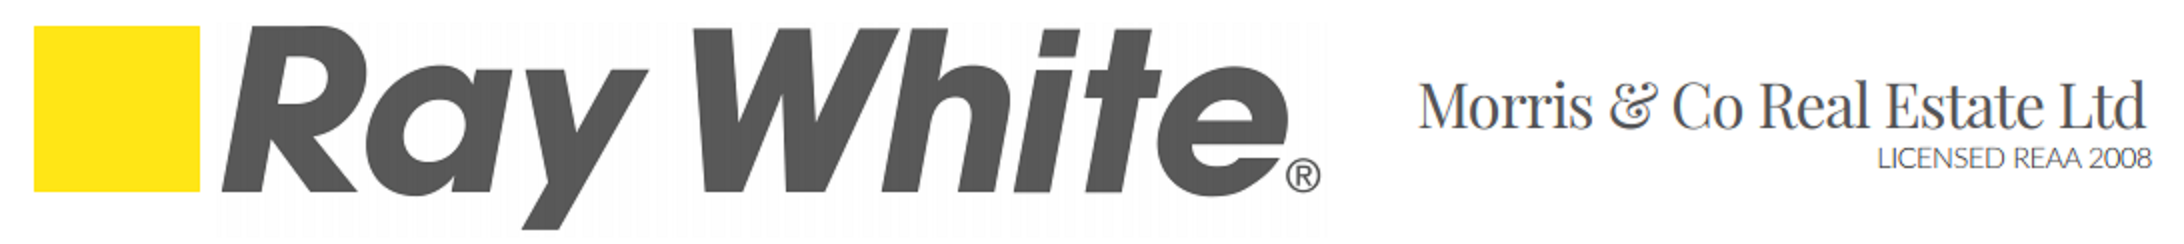 https://campaign-image.com/zohocampaigns/338309000007295028_zc_v12_ray_white_morris___co_logo_supplied_large.png